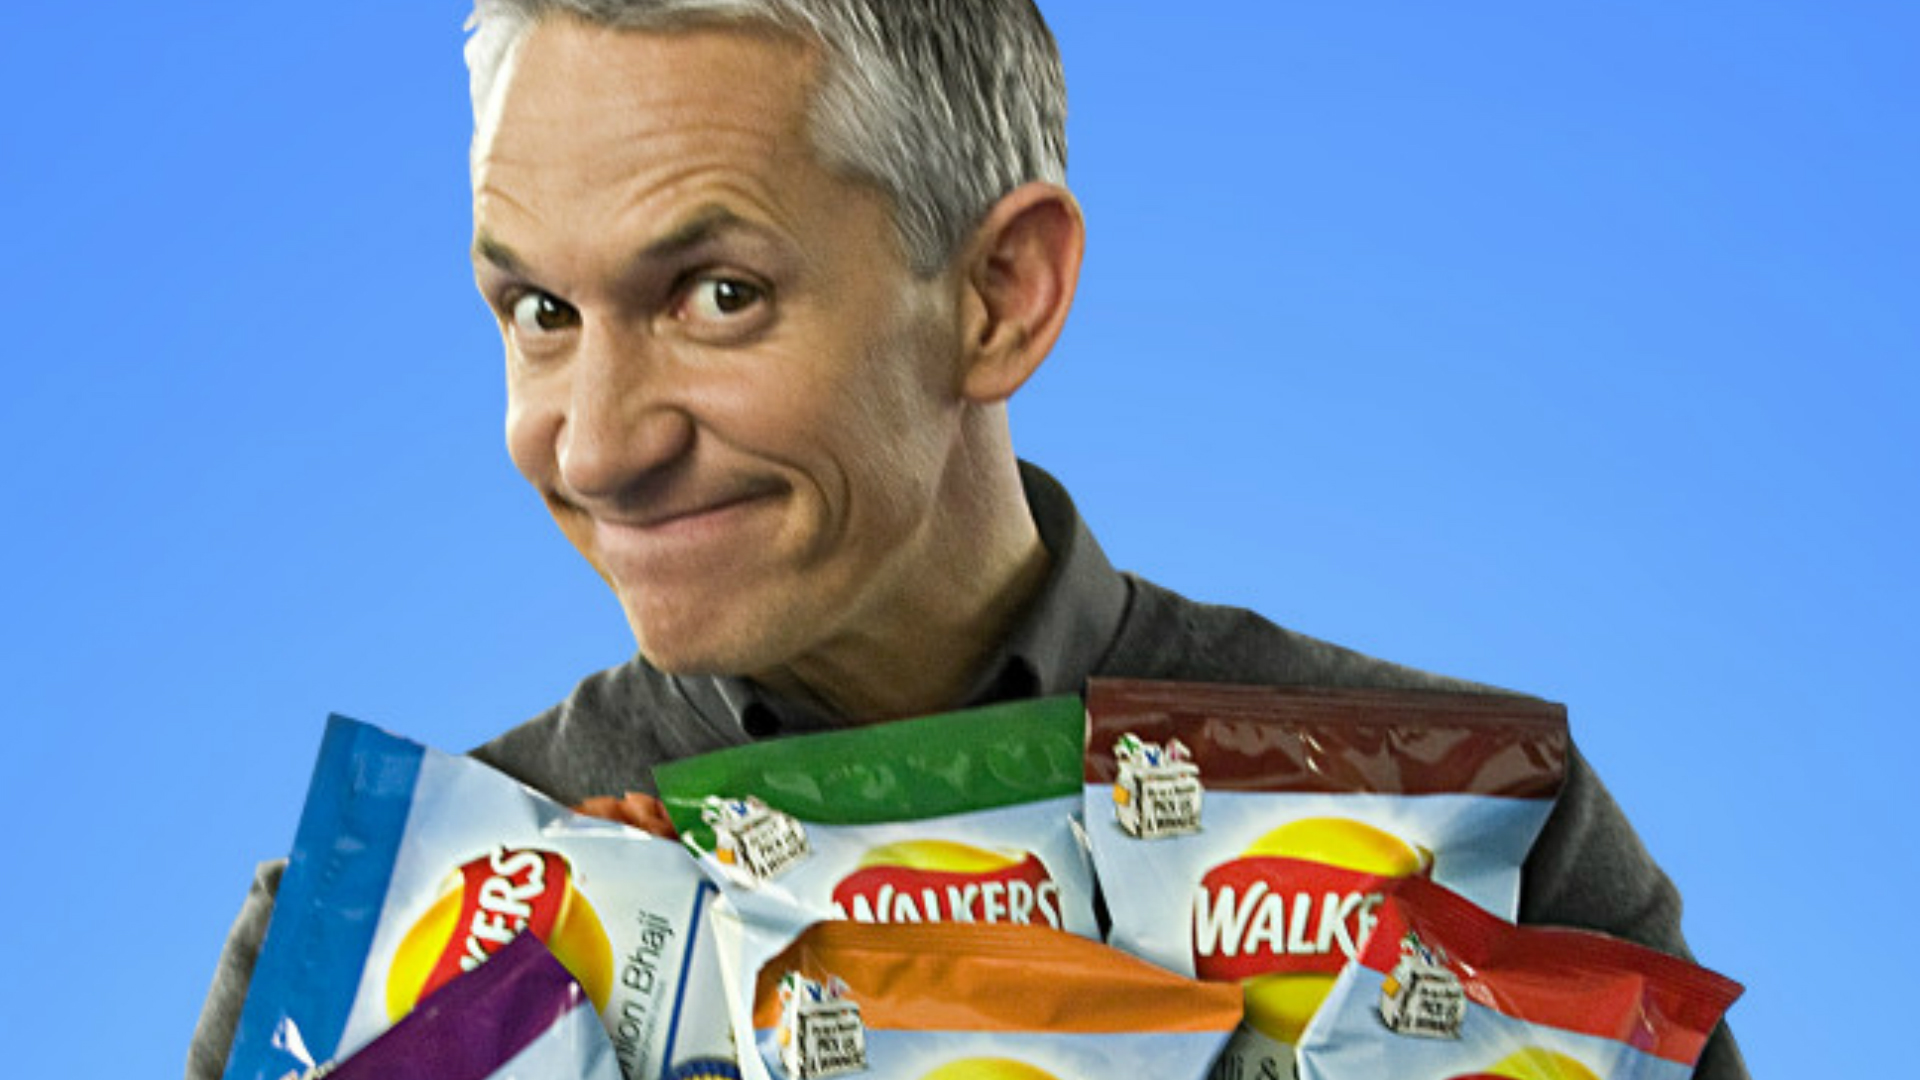 Walkers Crisps Competition Banned For Being 'Impossible To ...